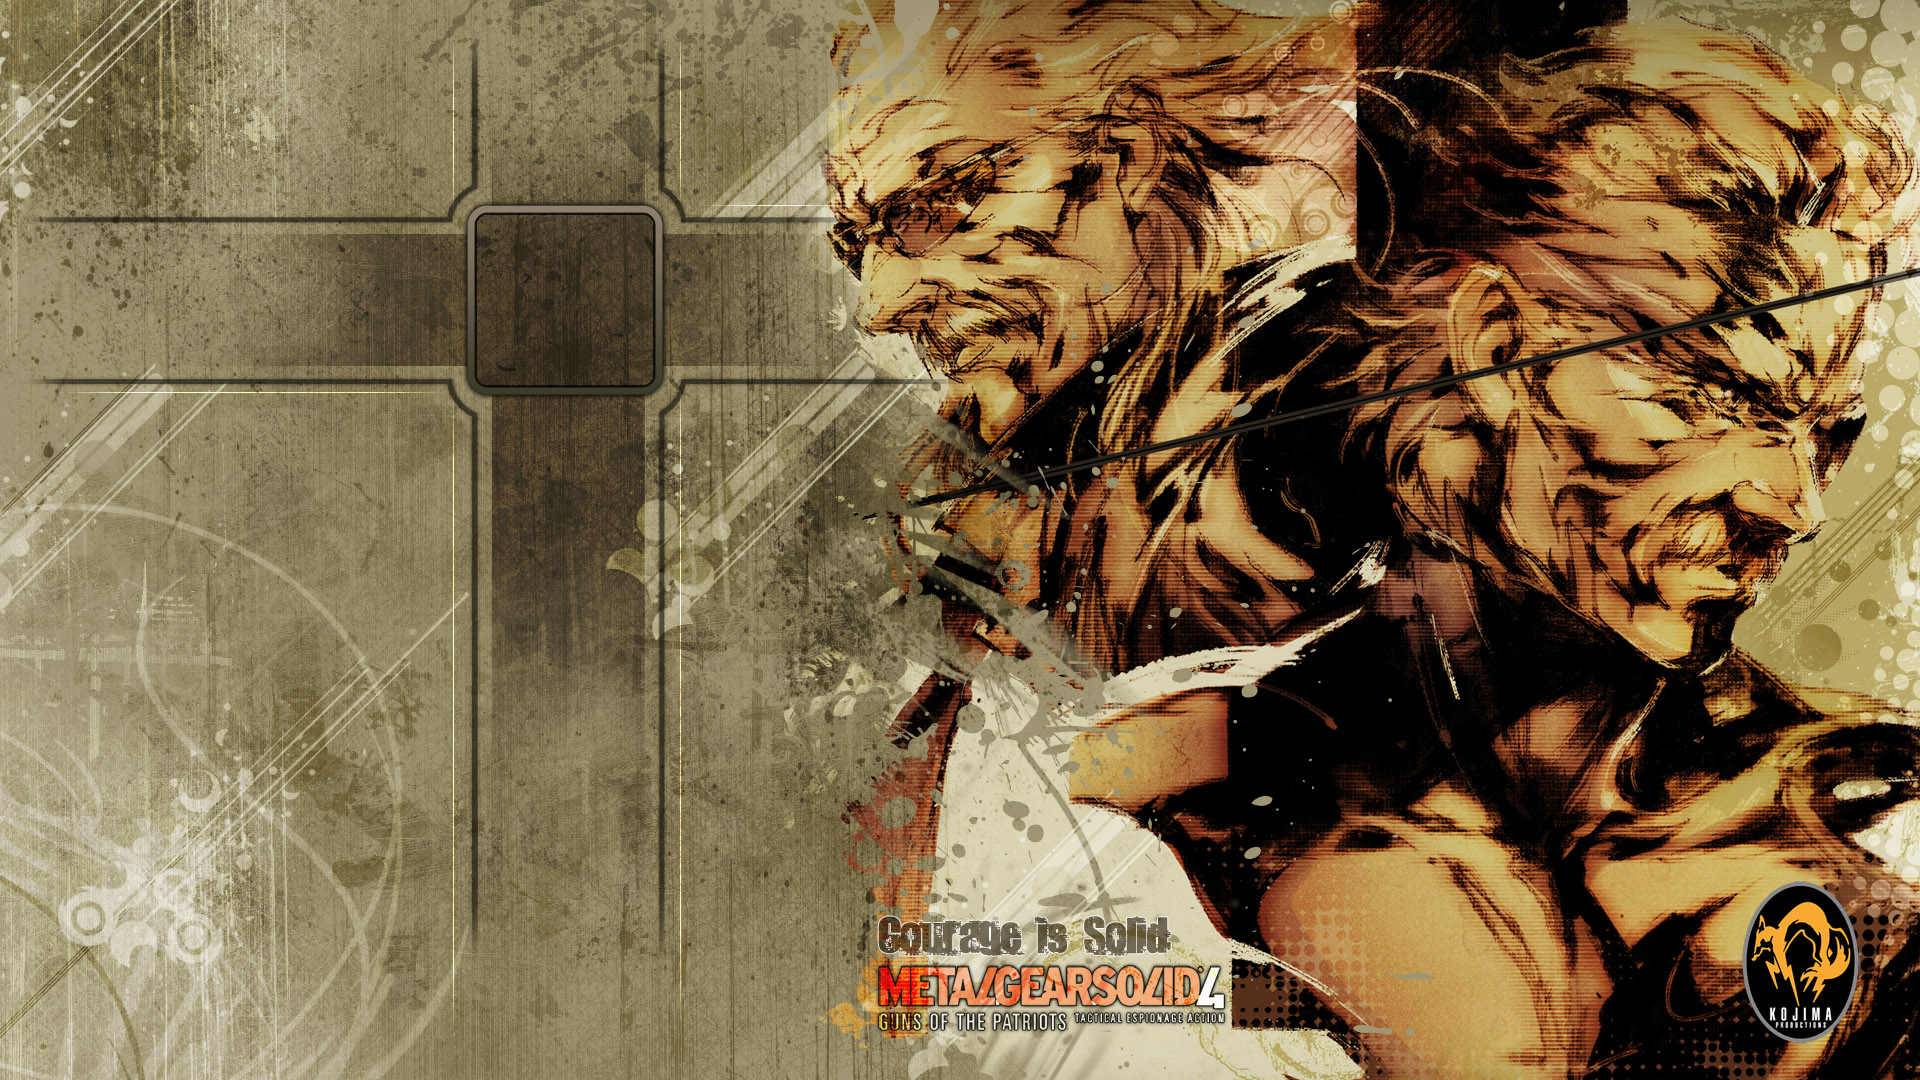 Metal Gear Solid Wallpaper 1080p MGS4 - Courage is Soli...